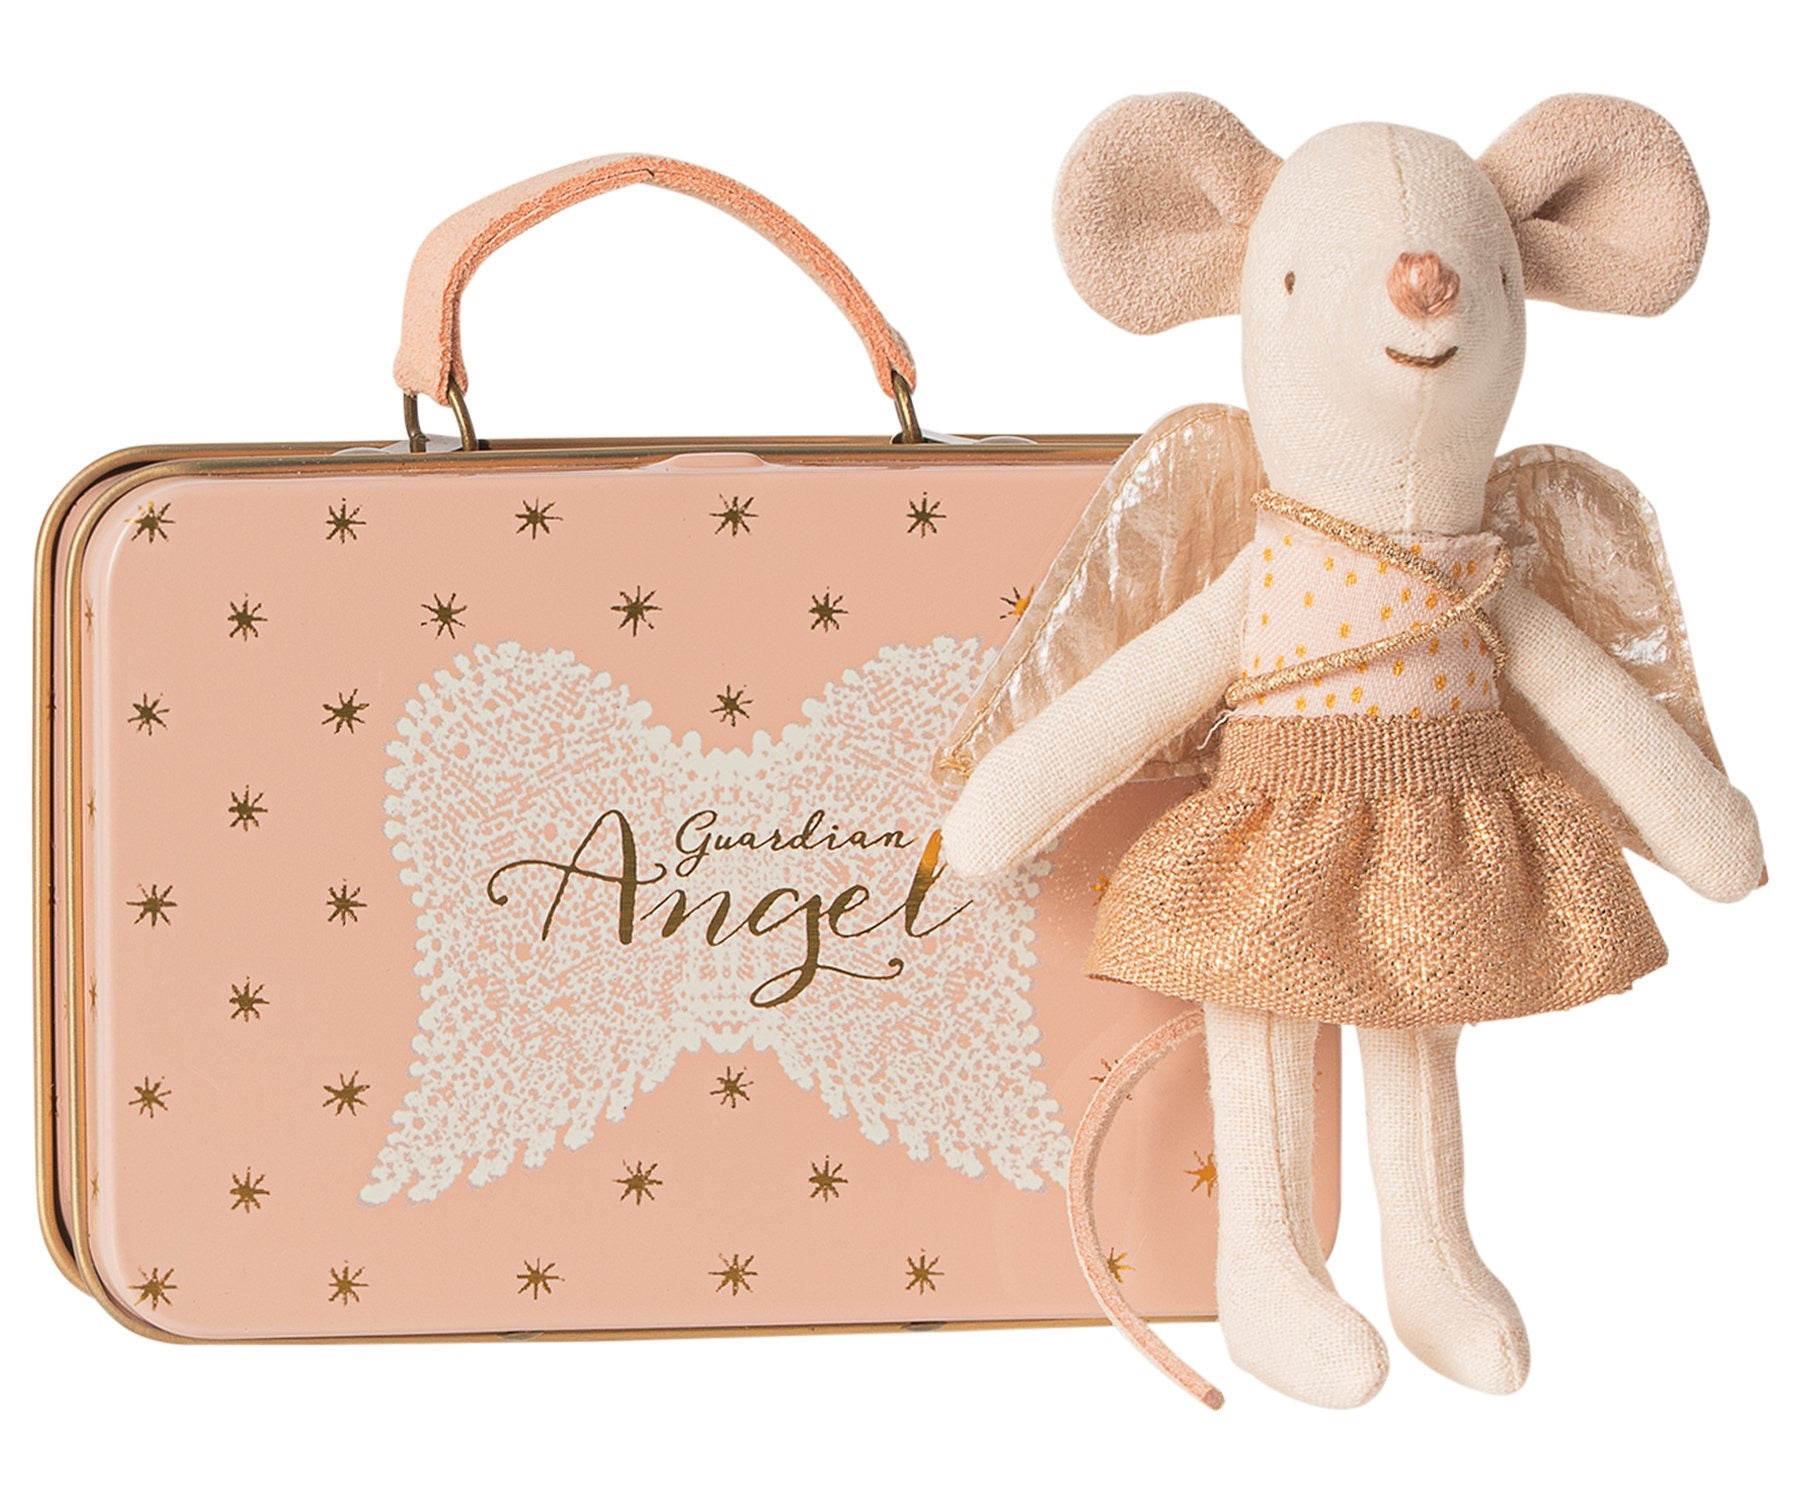 Guardian Angel Little Sister Mouse in Suitcase